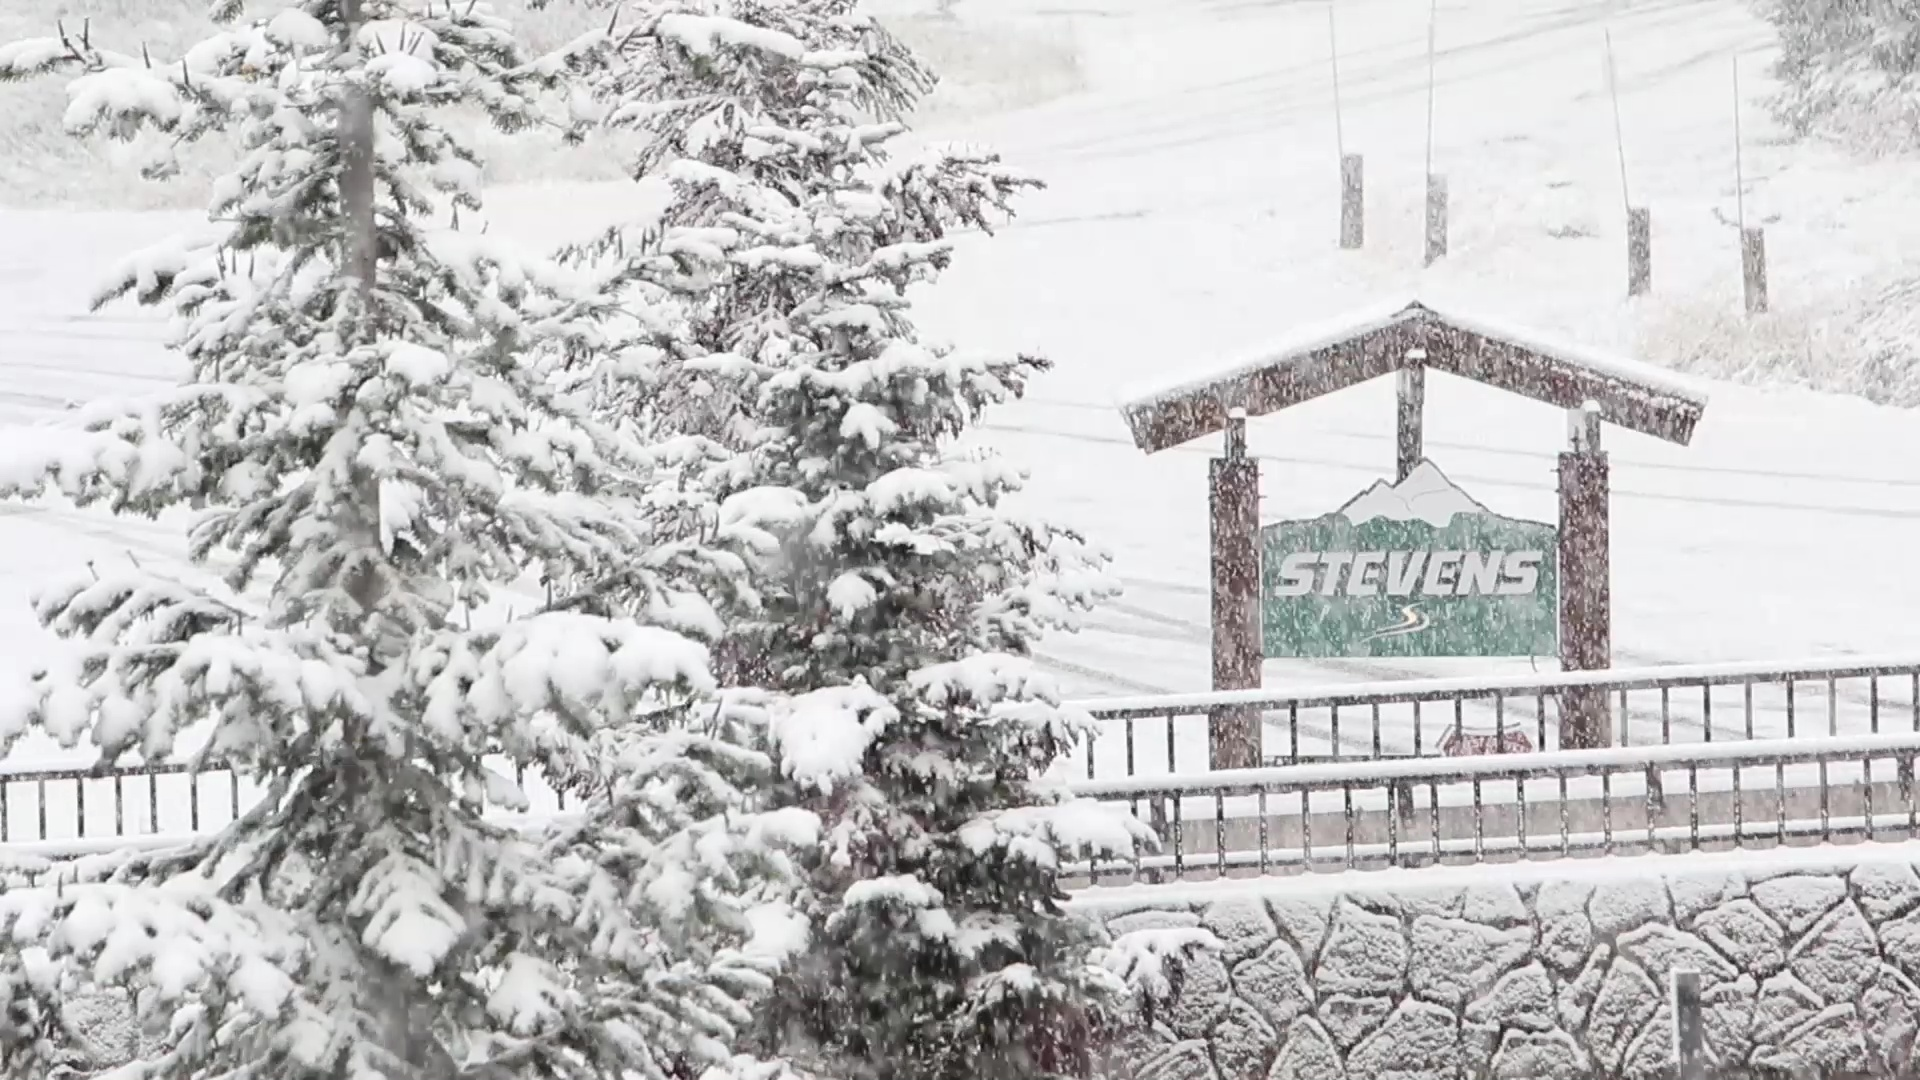 Snow falls at Stevens Pass on Oct. 12, 2017 (Photo: Stevens Pass Ski Resort)